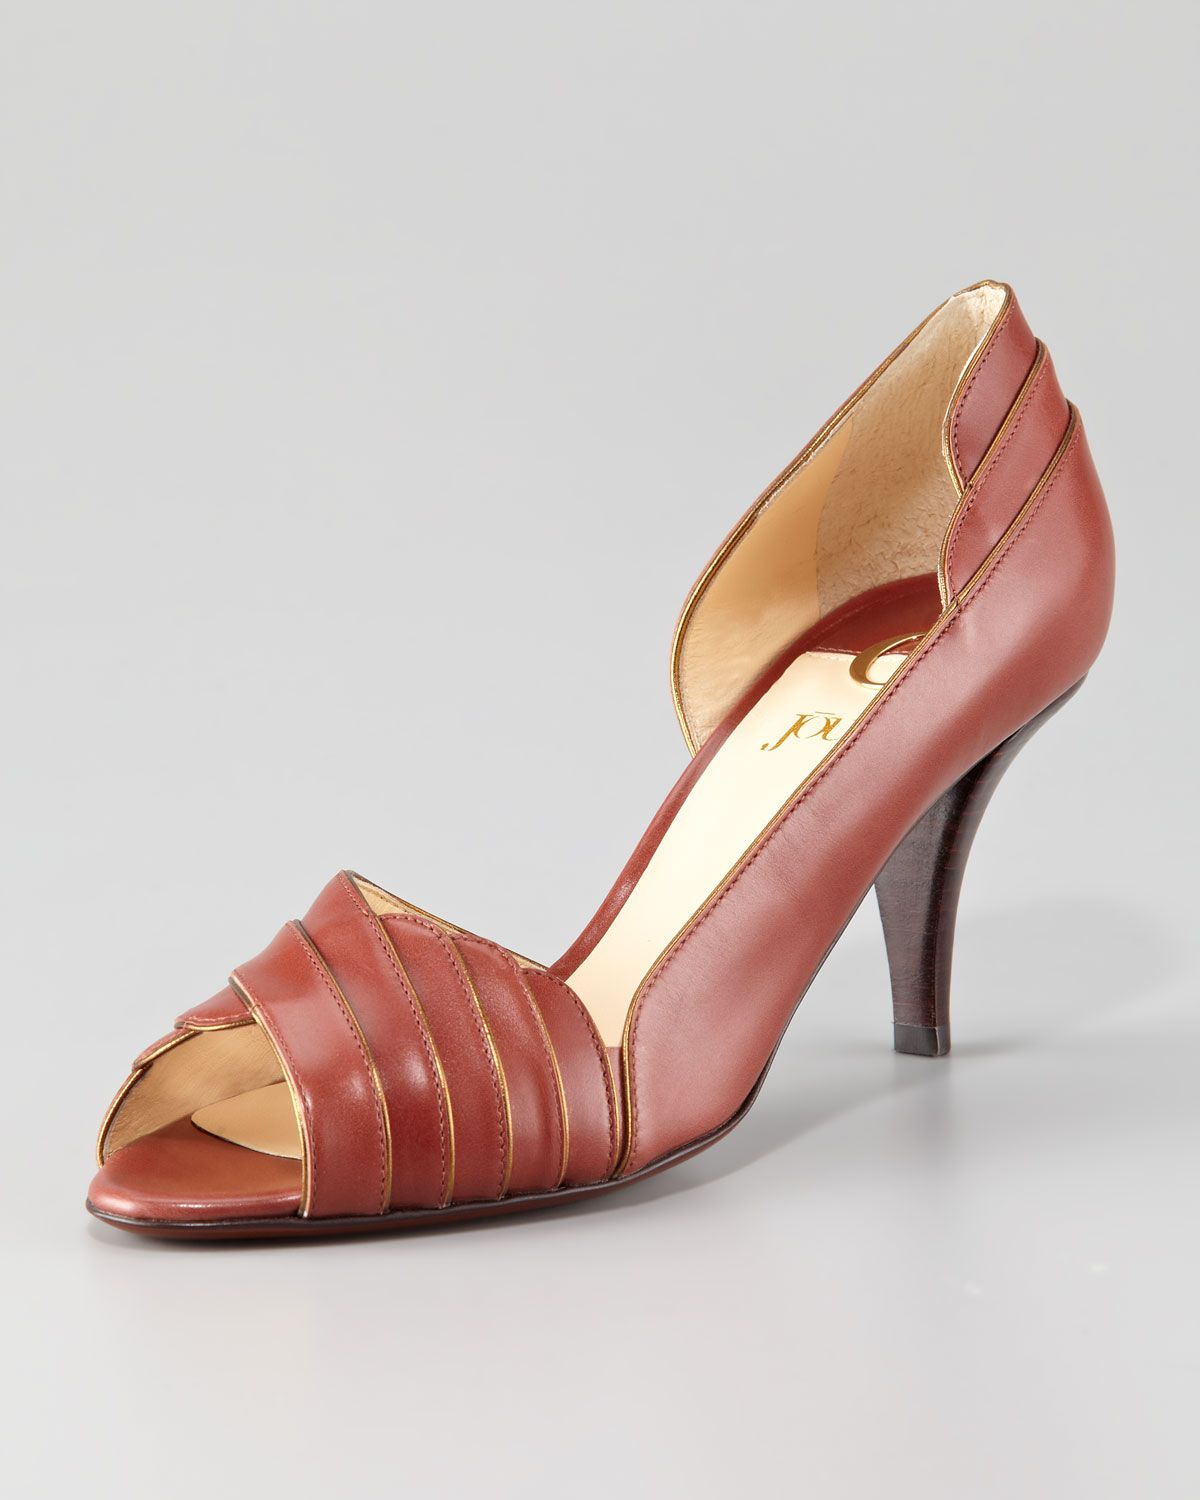 O Jour Leather Peep-Toe Pumps cheap sale low price M5upVn89k